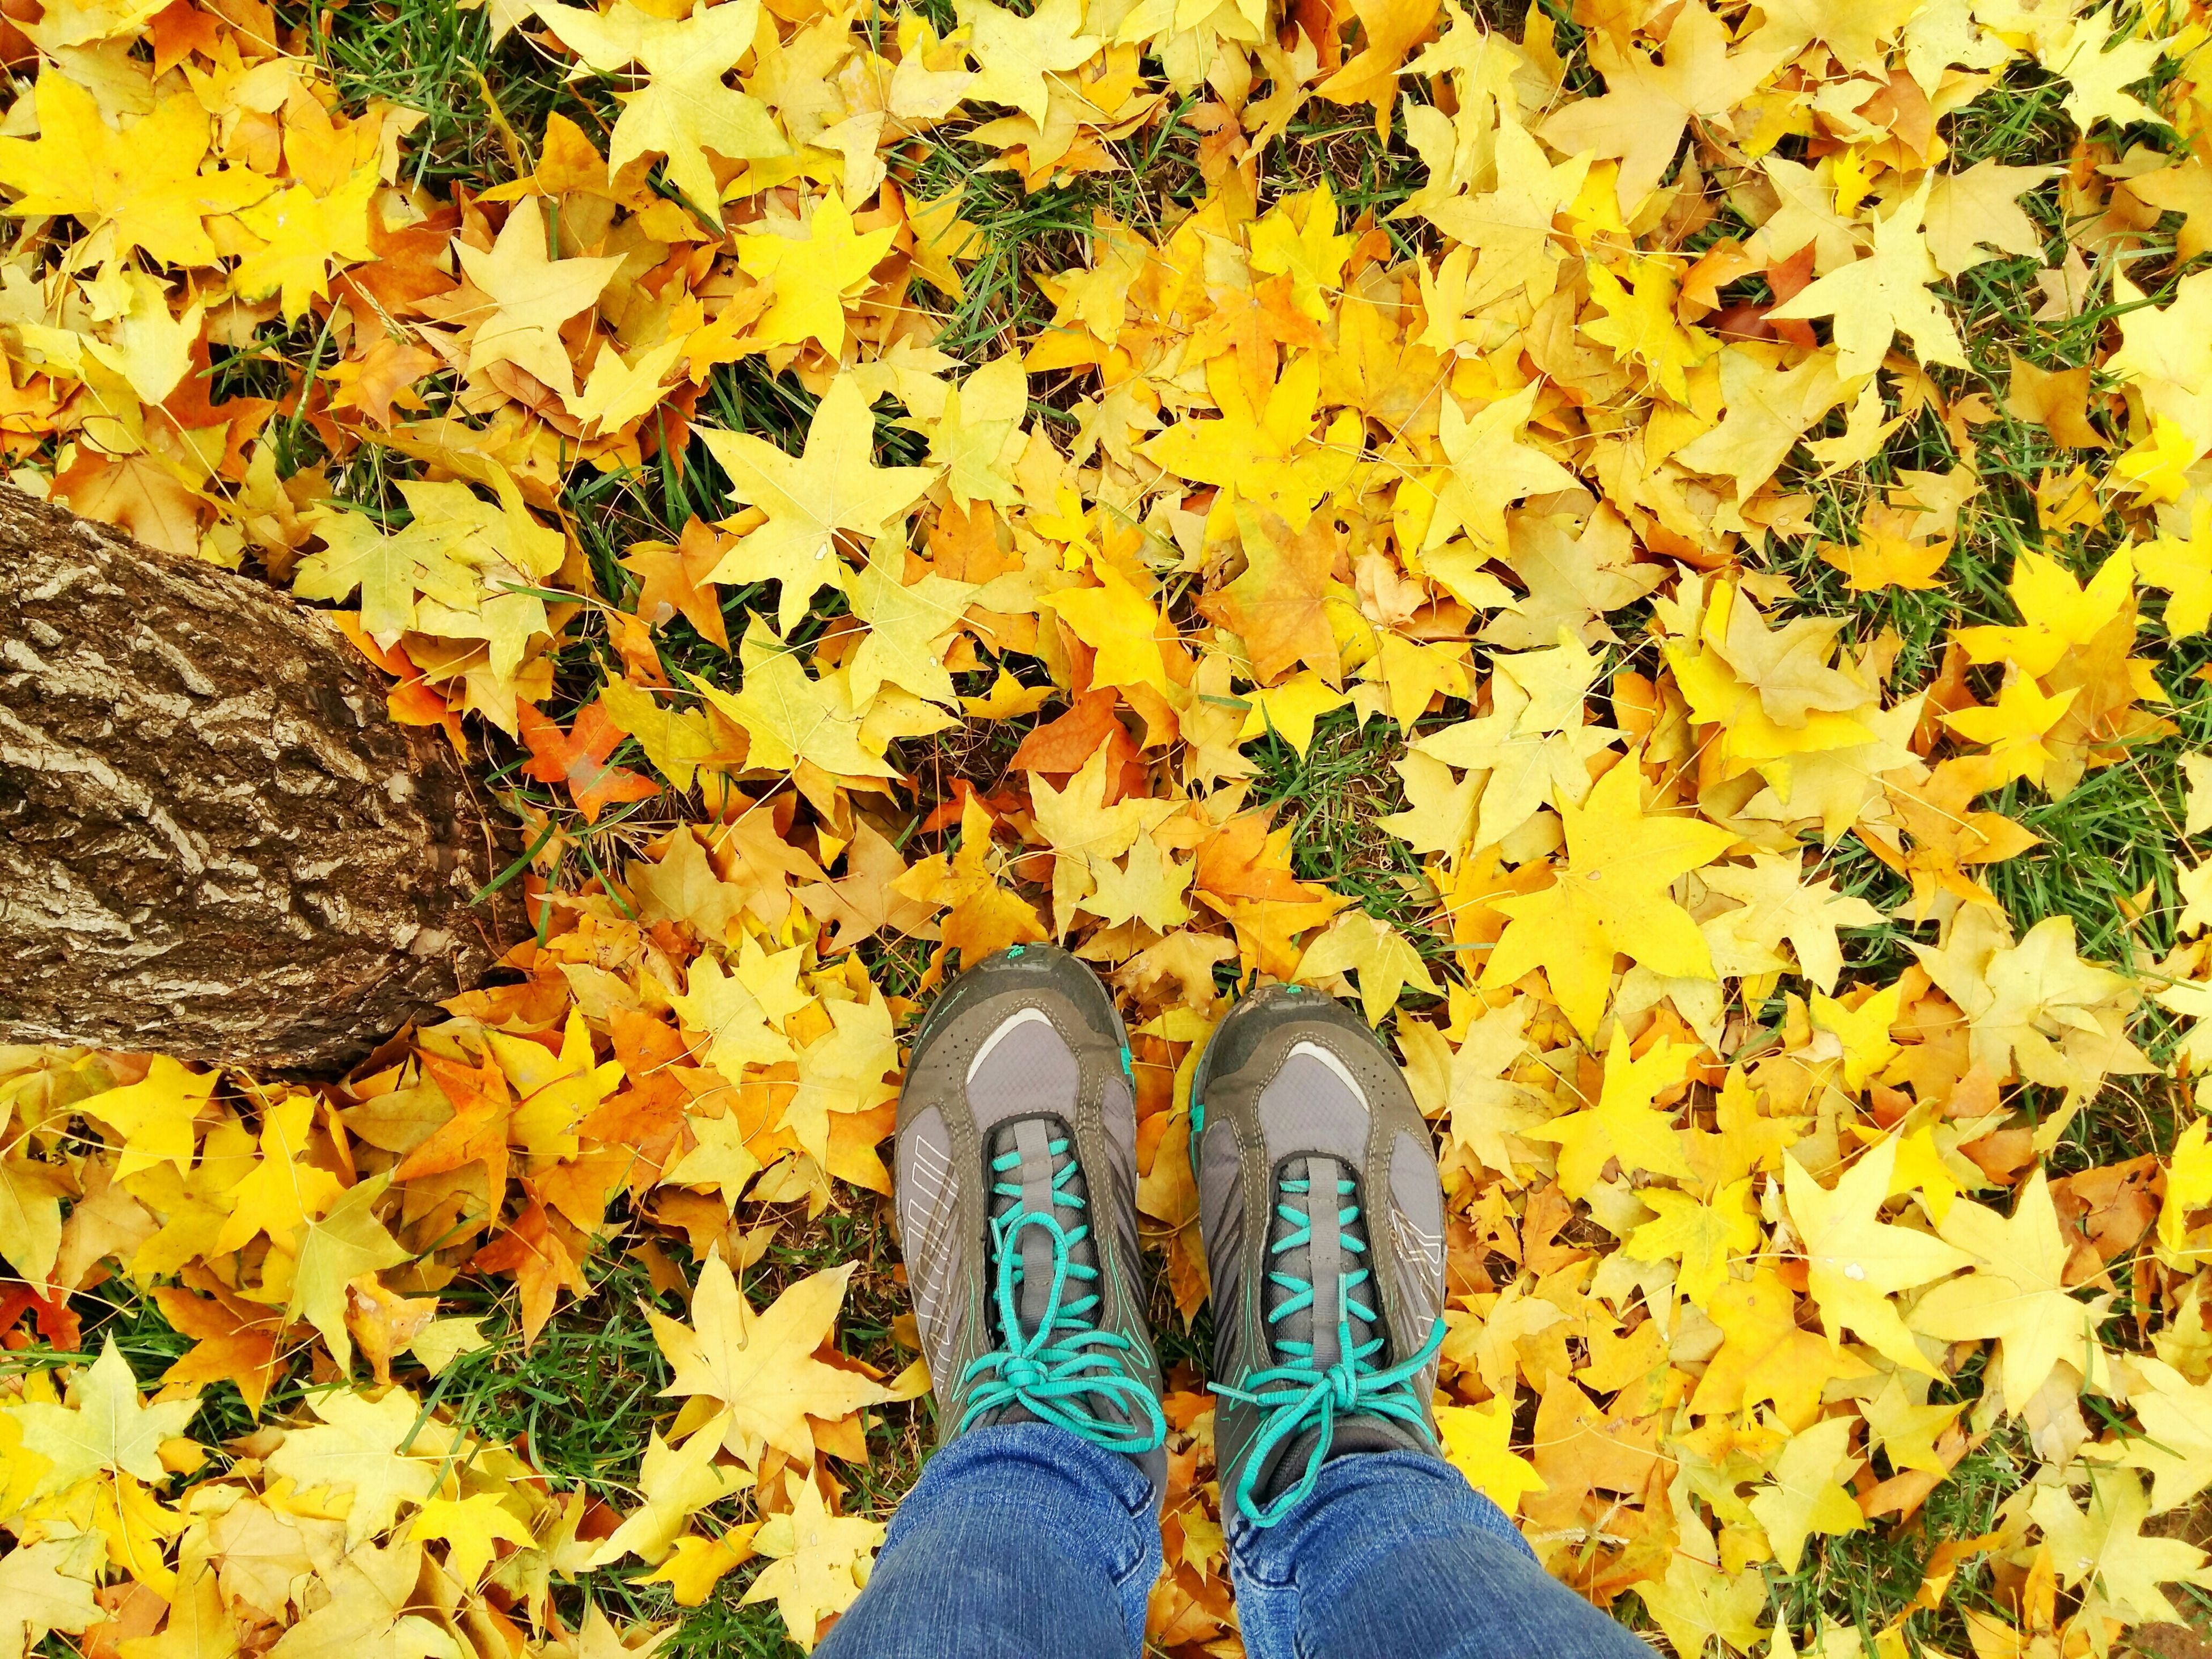 low section, person, shoe, personal perspective, autumn, standing, leaf, human foot, change, footwear, season, lifestyles, yellow, leaves, high angle view, unrecognizable person, jeans